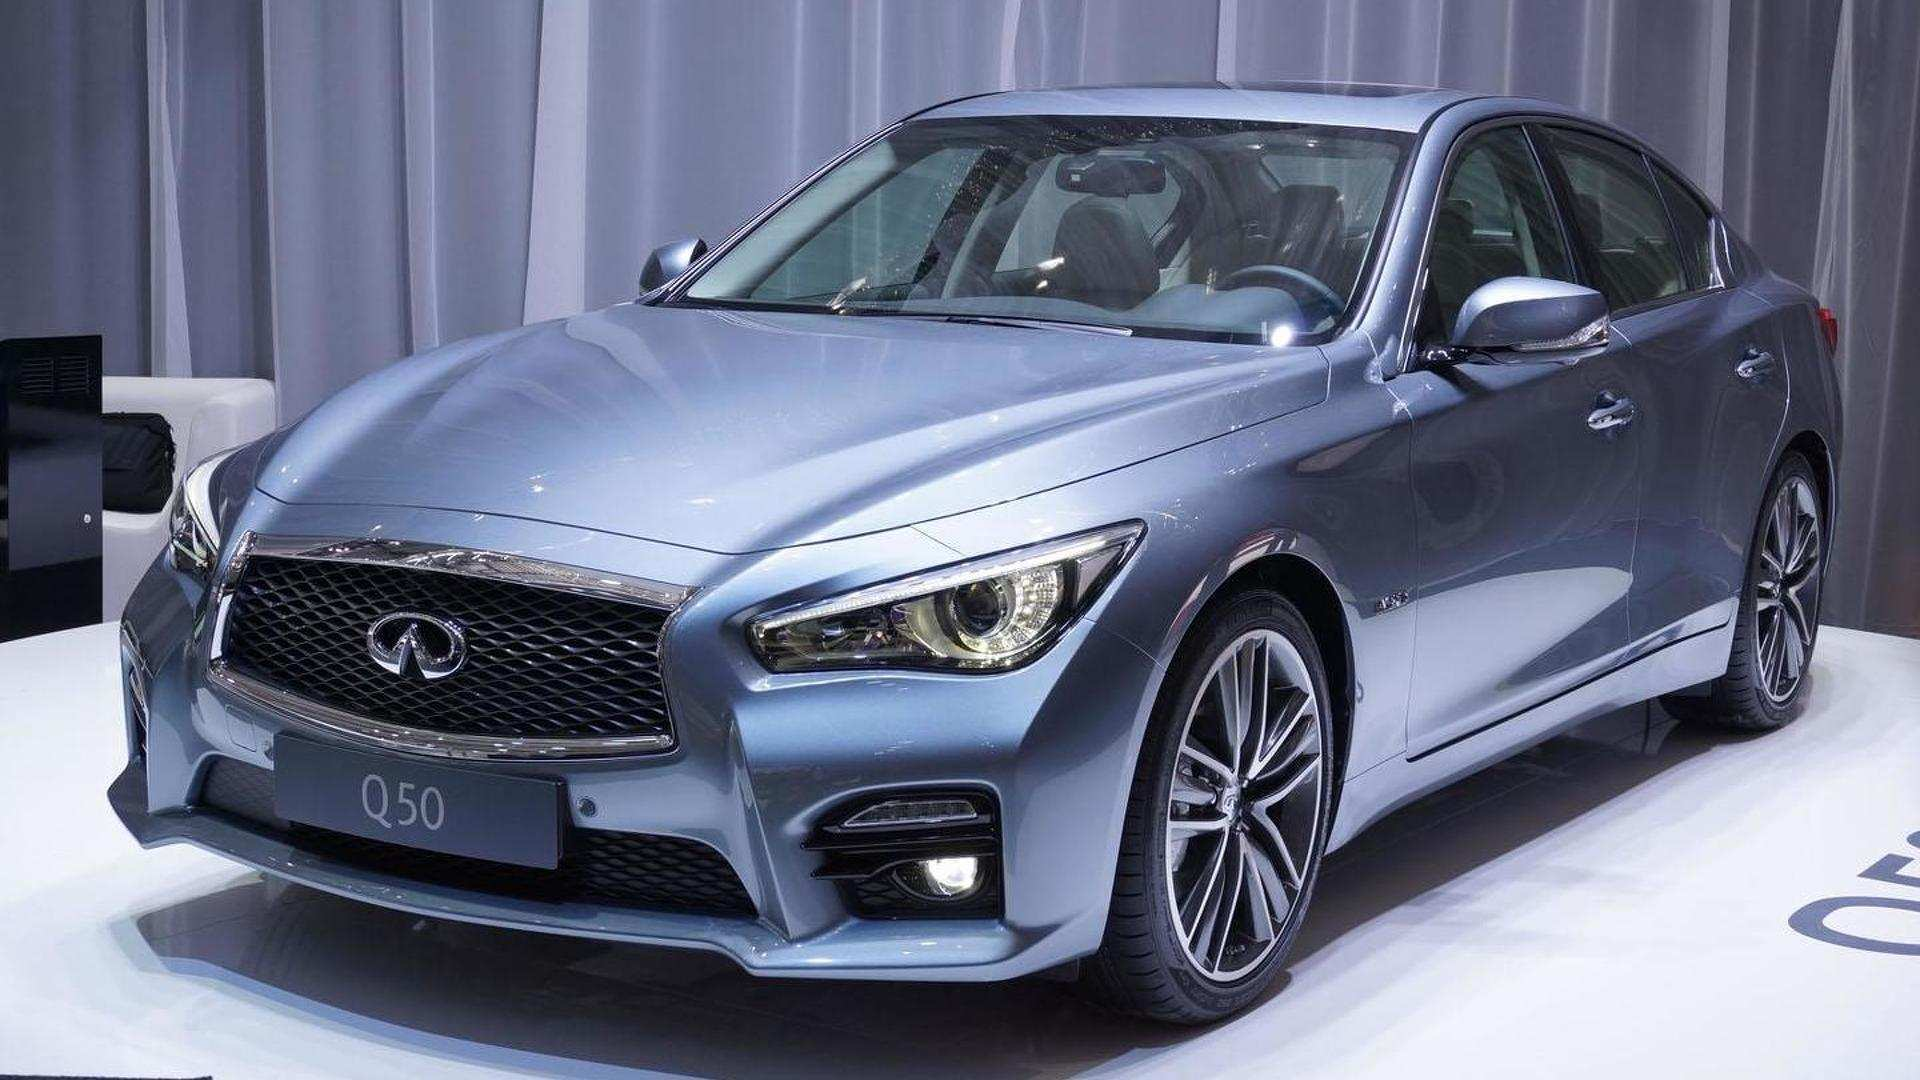 28 All New The Infiniti Q50 2019 Price Engine Redesign by The Infiniti Q50 2019 Price Engine